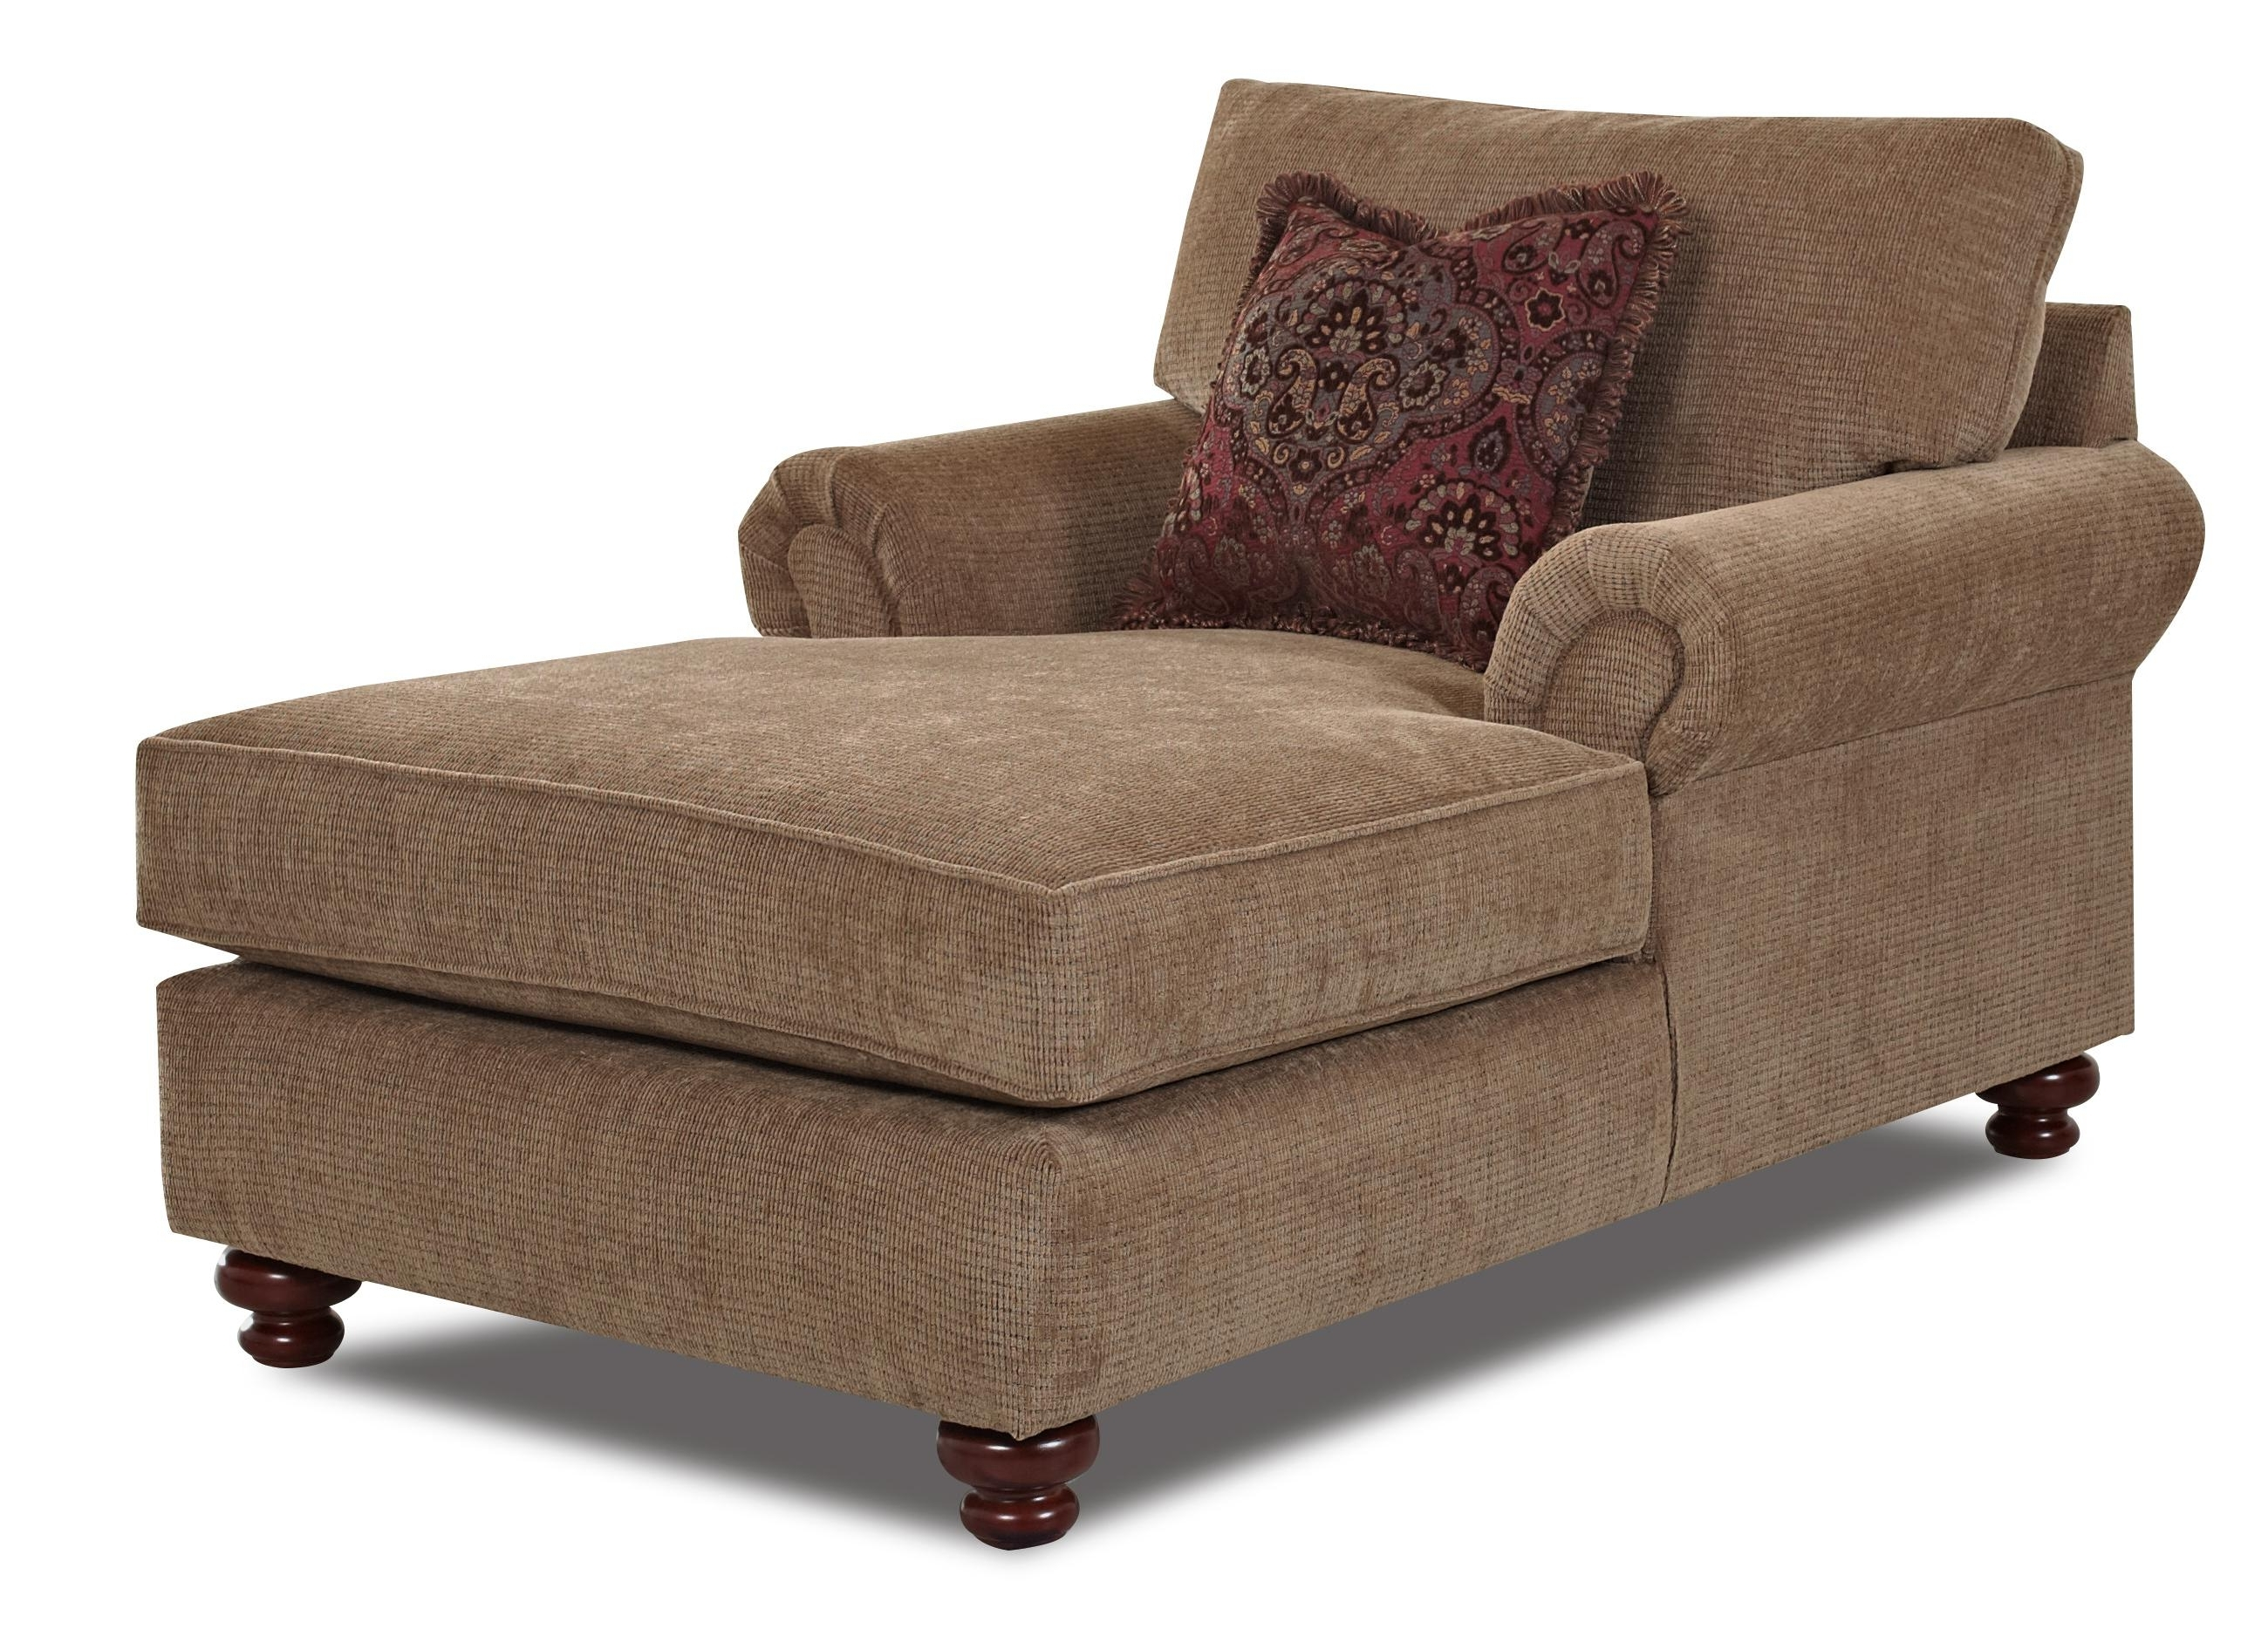 Current Brown Chaise Lounge Chairs • Lounge Chairs Ideas Throughout Brown Chaise Lounges (View 4 of 15)